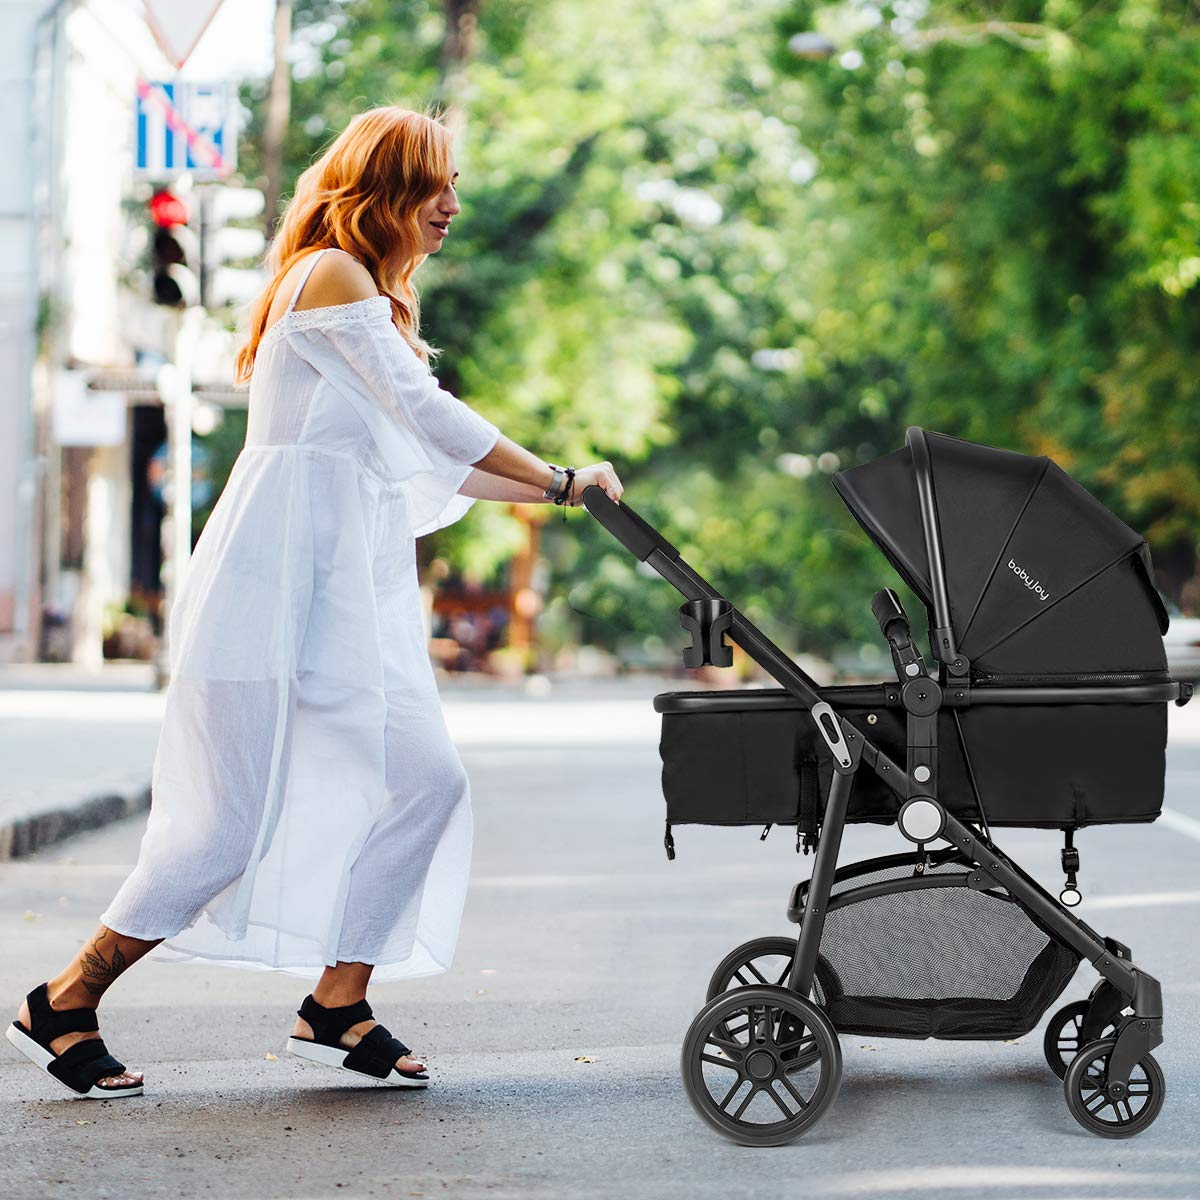 BABY JOY Baby Stroller, 2 in 1 Convertible Carriage Bassinet to Stroller, Pushchair with Foot Cover, Cup Holder, Large Storage Space, Wheels Suspension, 5-Point Harness, Deluxe Black by BABY JOY (Image #3)